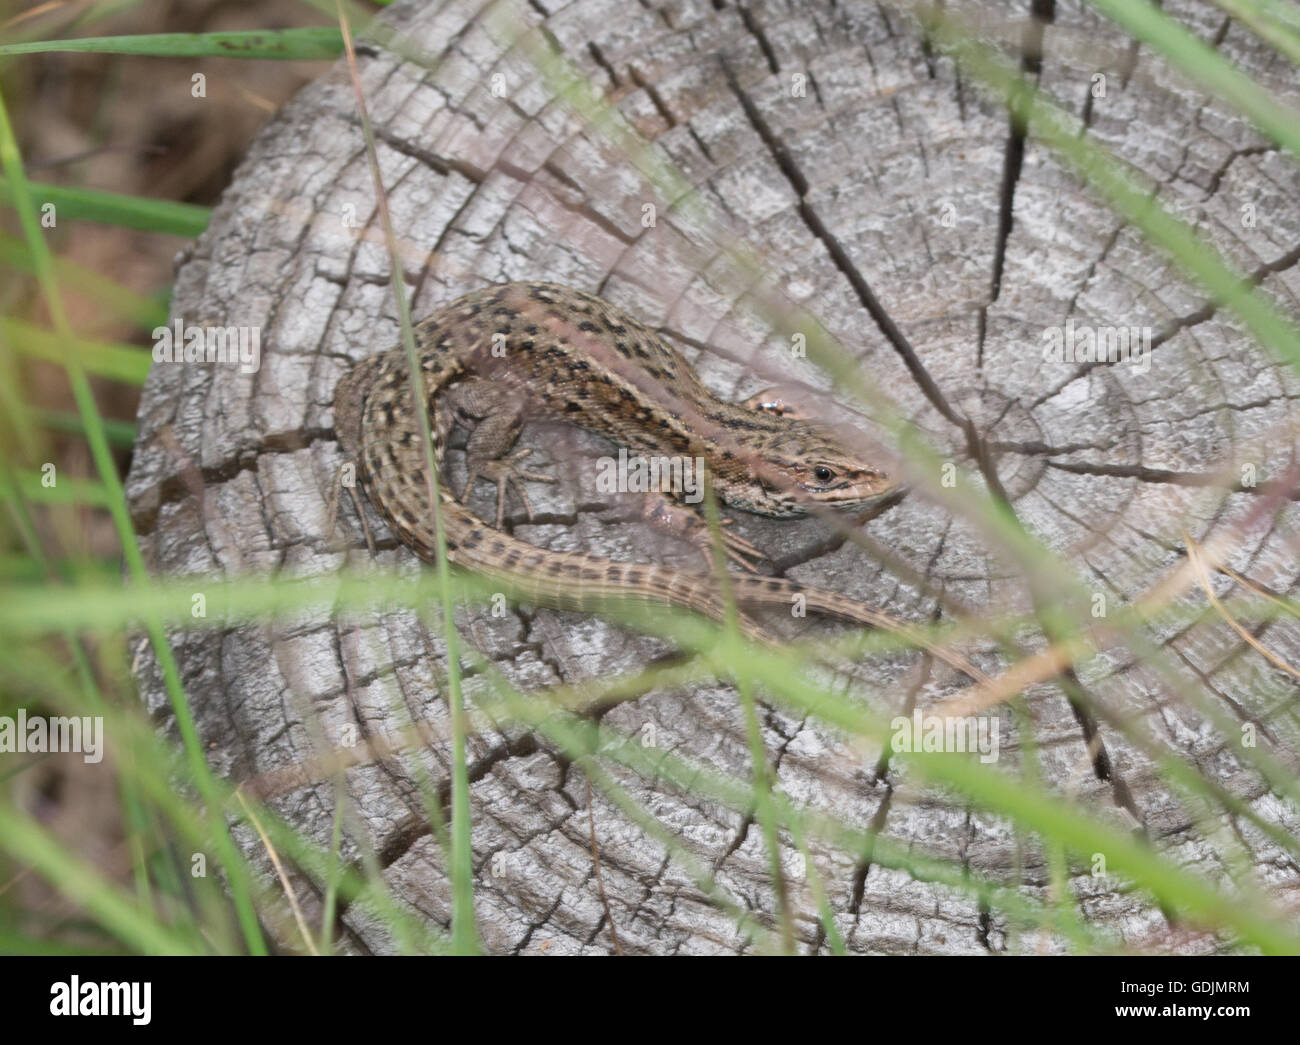 common-or-viviparous-lizard-zootoca-vivipara-with-double-tail-GDJMRM.jpg